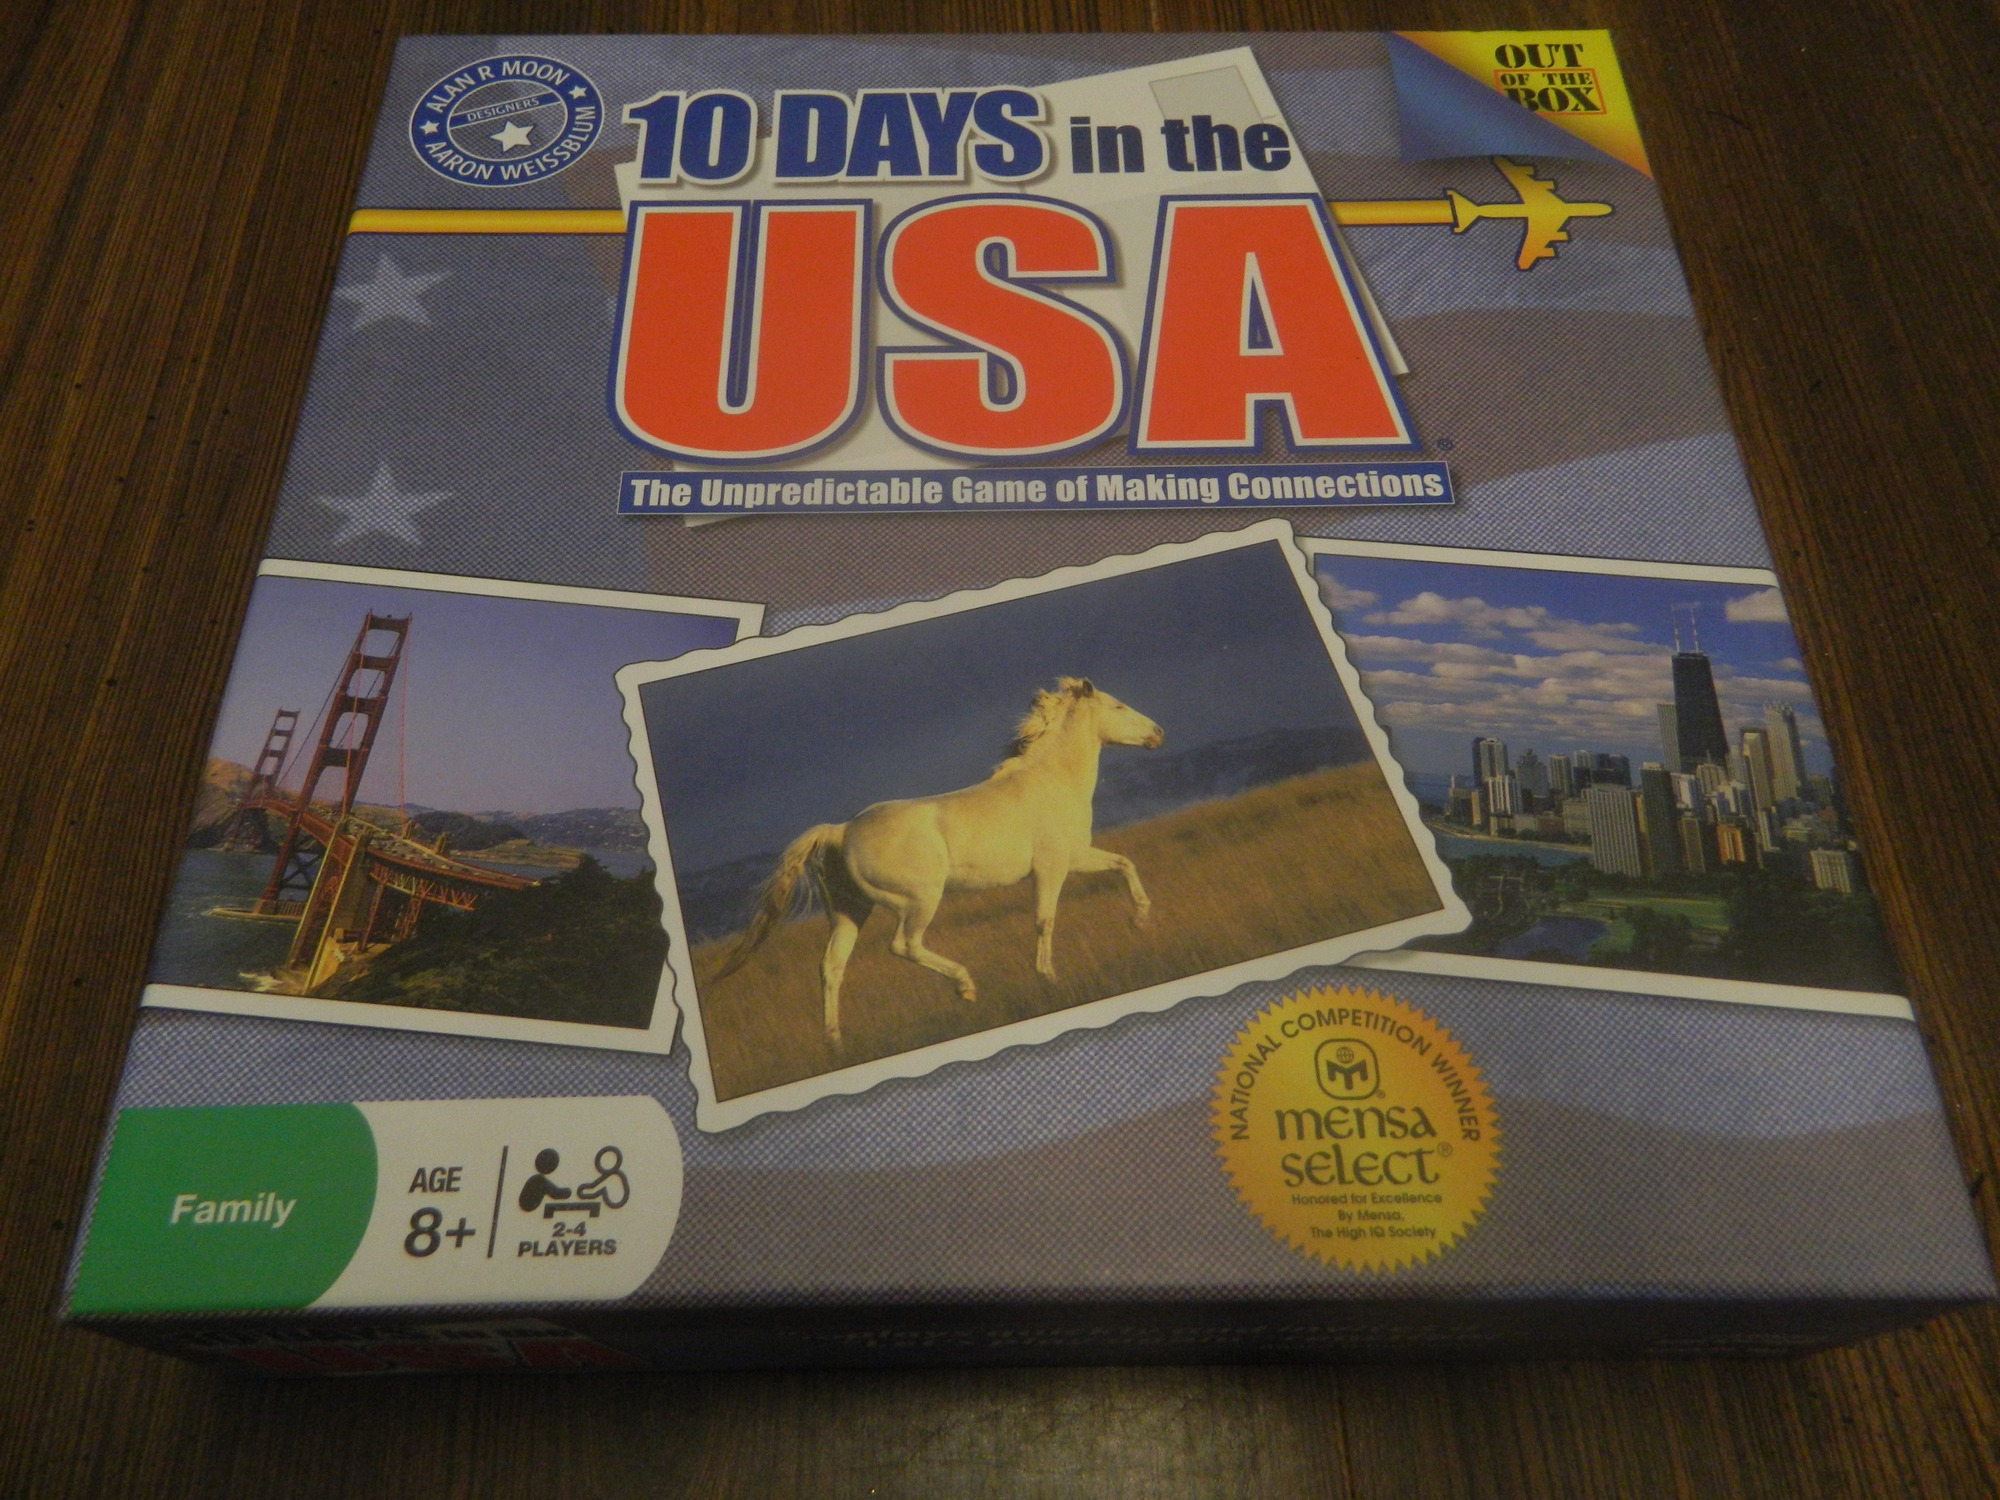 10 Days in the USA Box